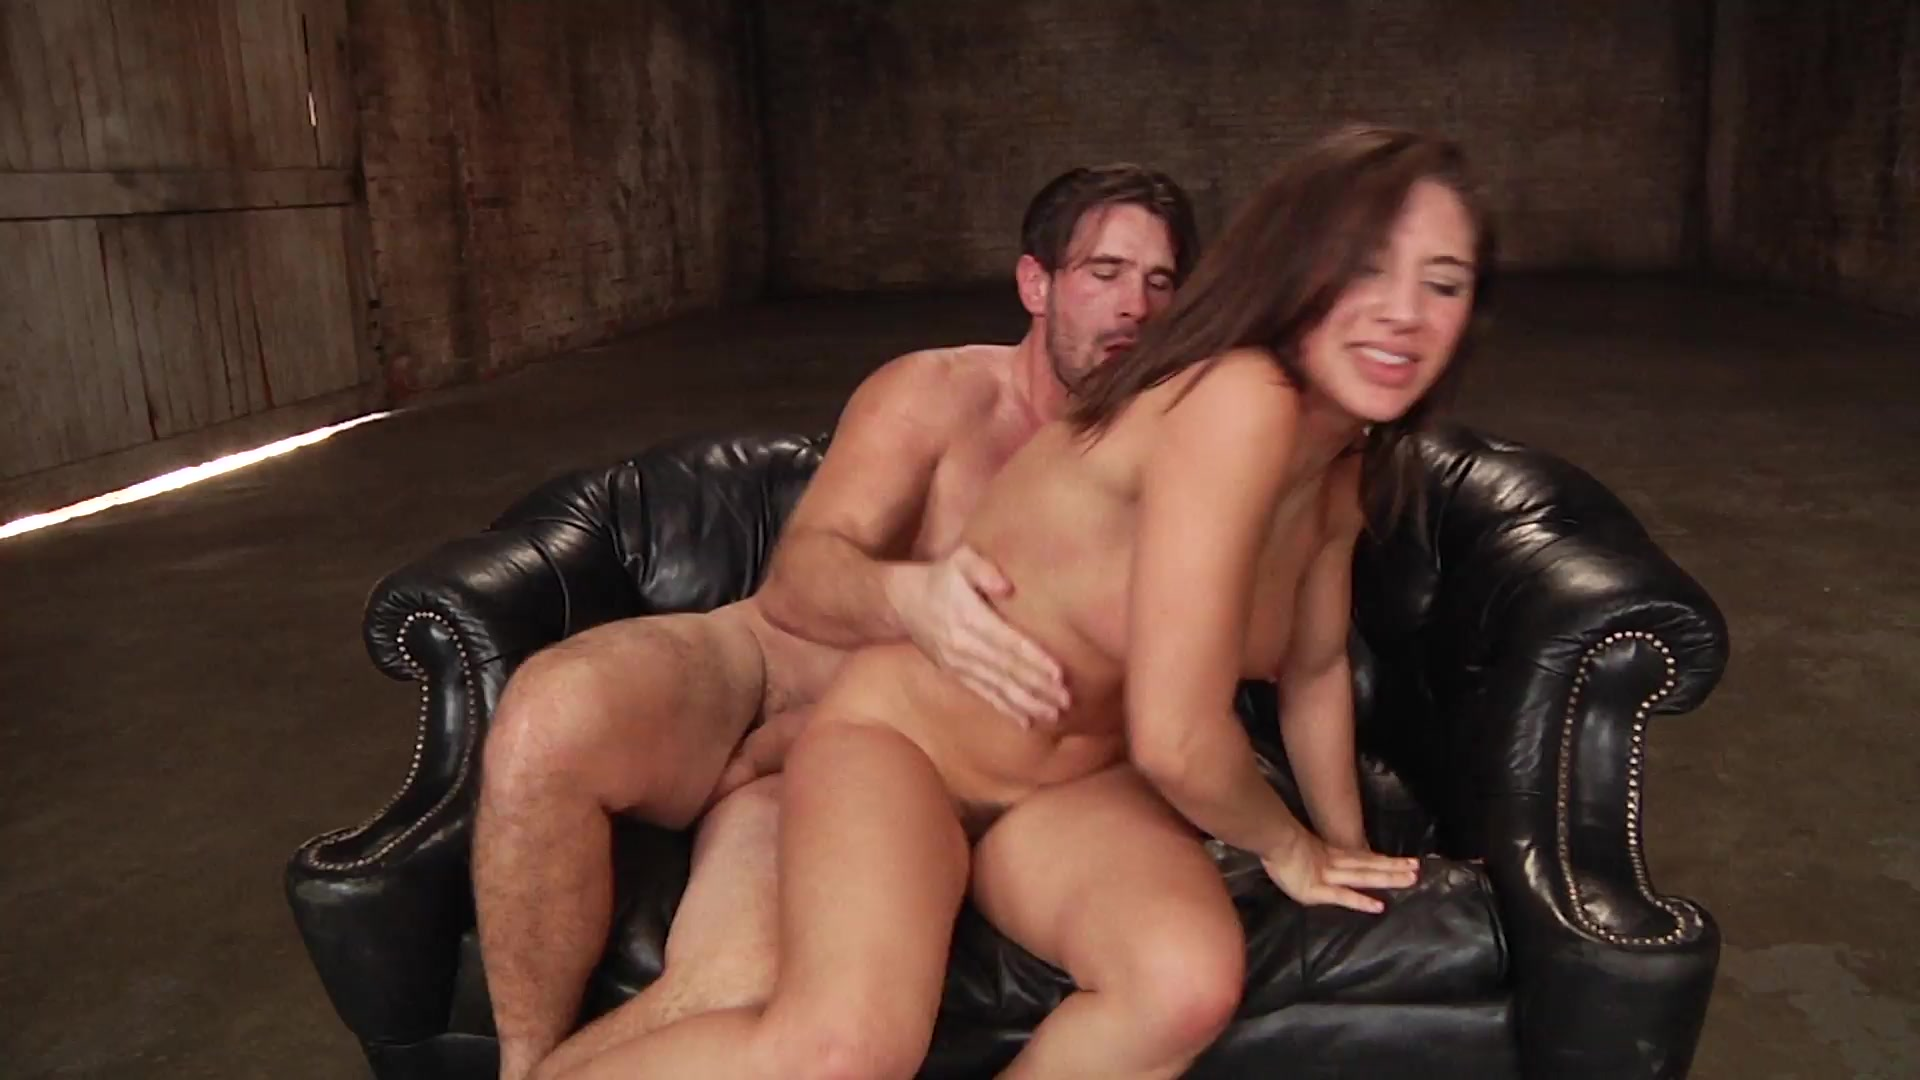 Scene with Abella Danger - image 20 out of 20